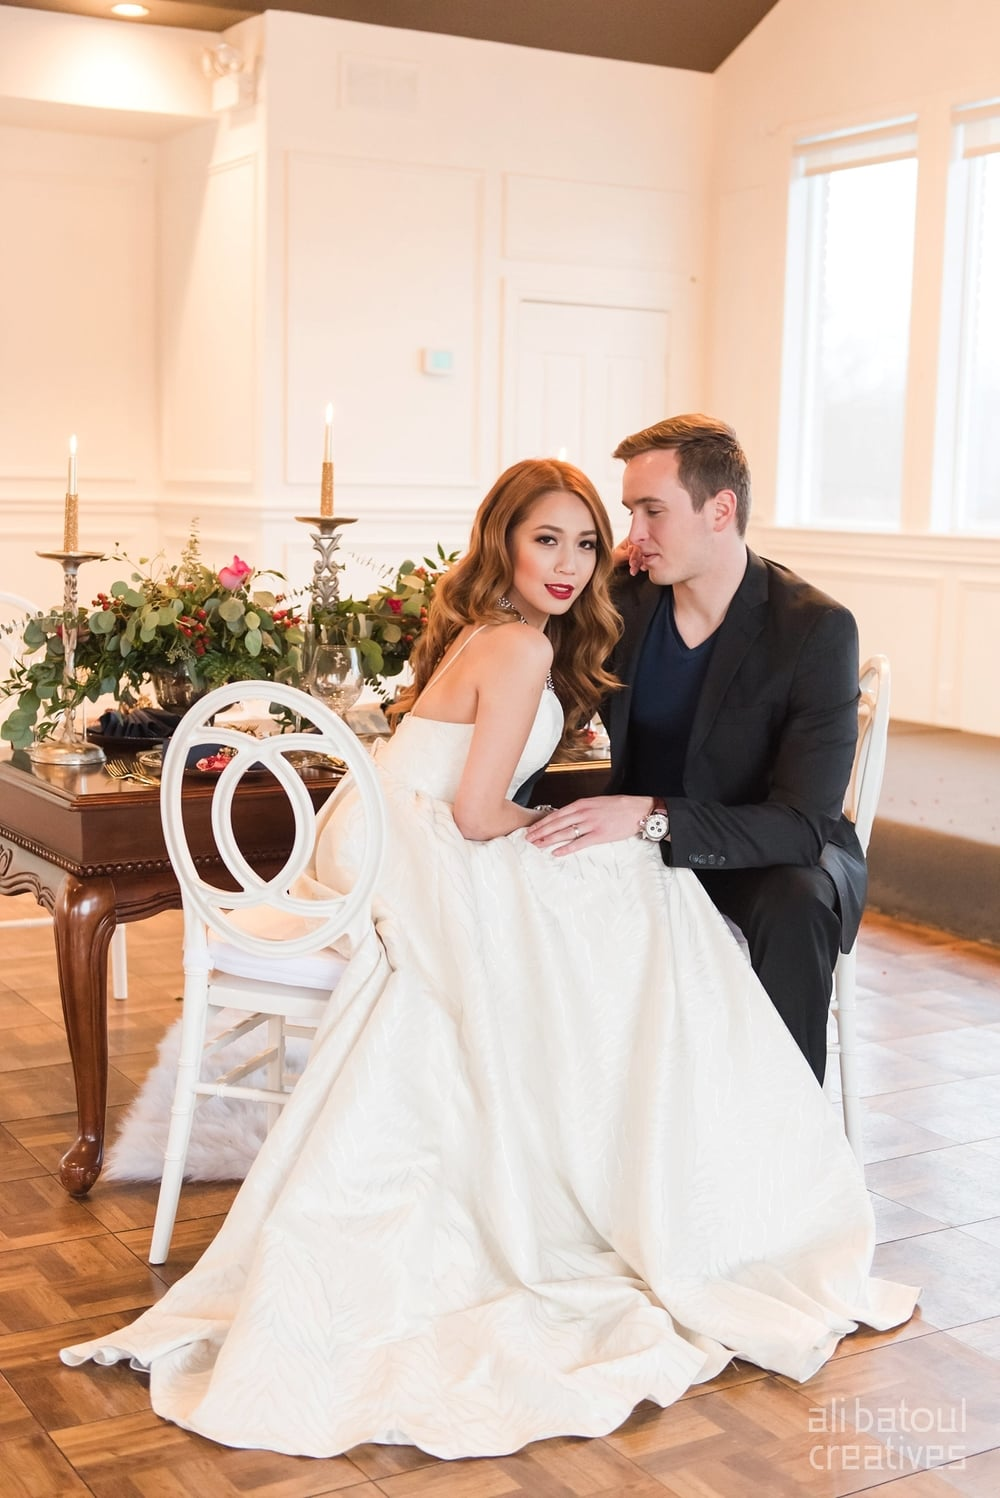 Glam Styled Shoot (blog) - Ali Batoul Creatives_-108_Stomped.jpg